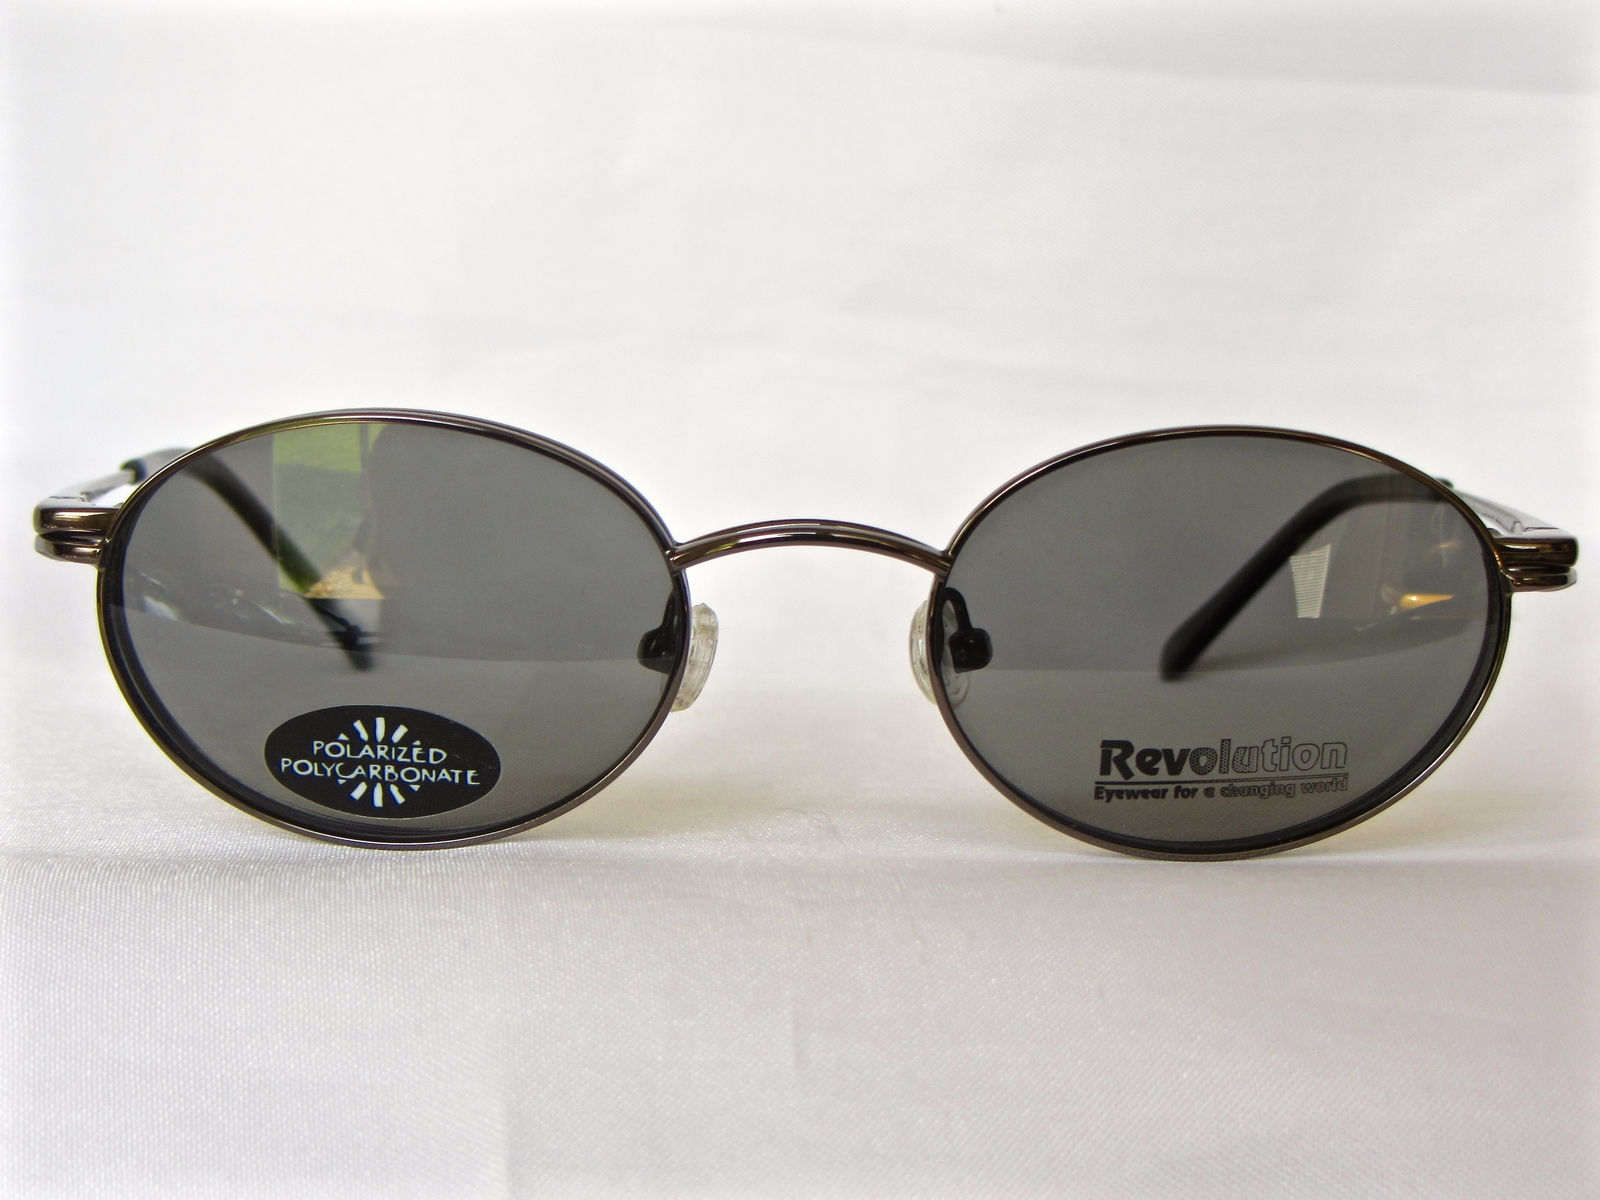 revolution eyewear rev322 eyeglasses glasses frames